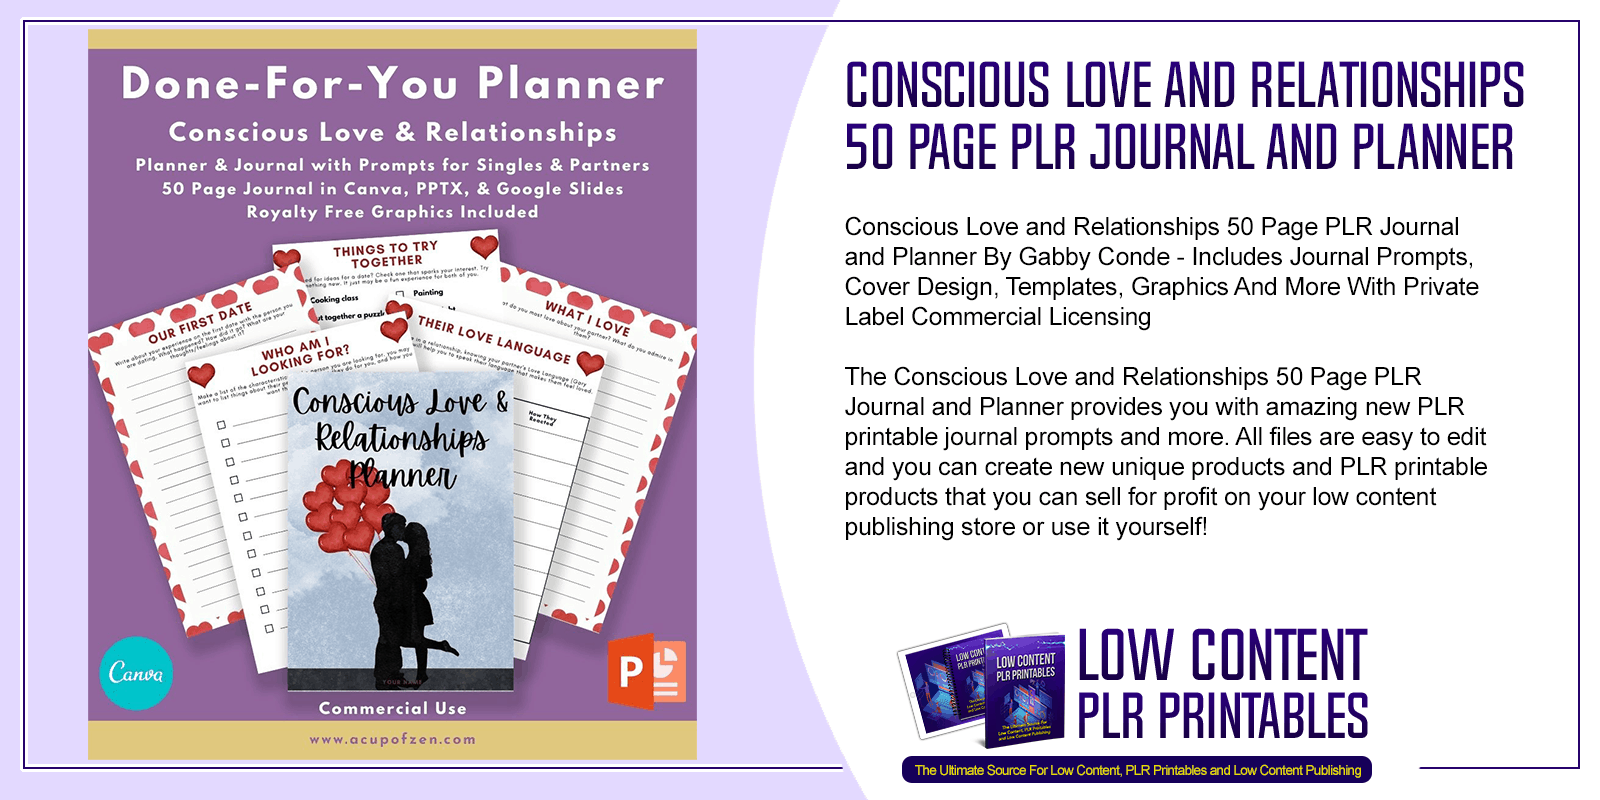 Conscious Love and Relationships 50 Page PLR Journal and Planner